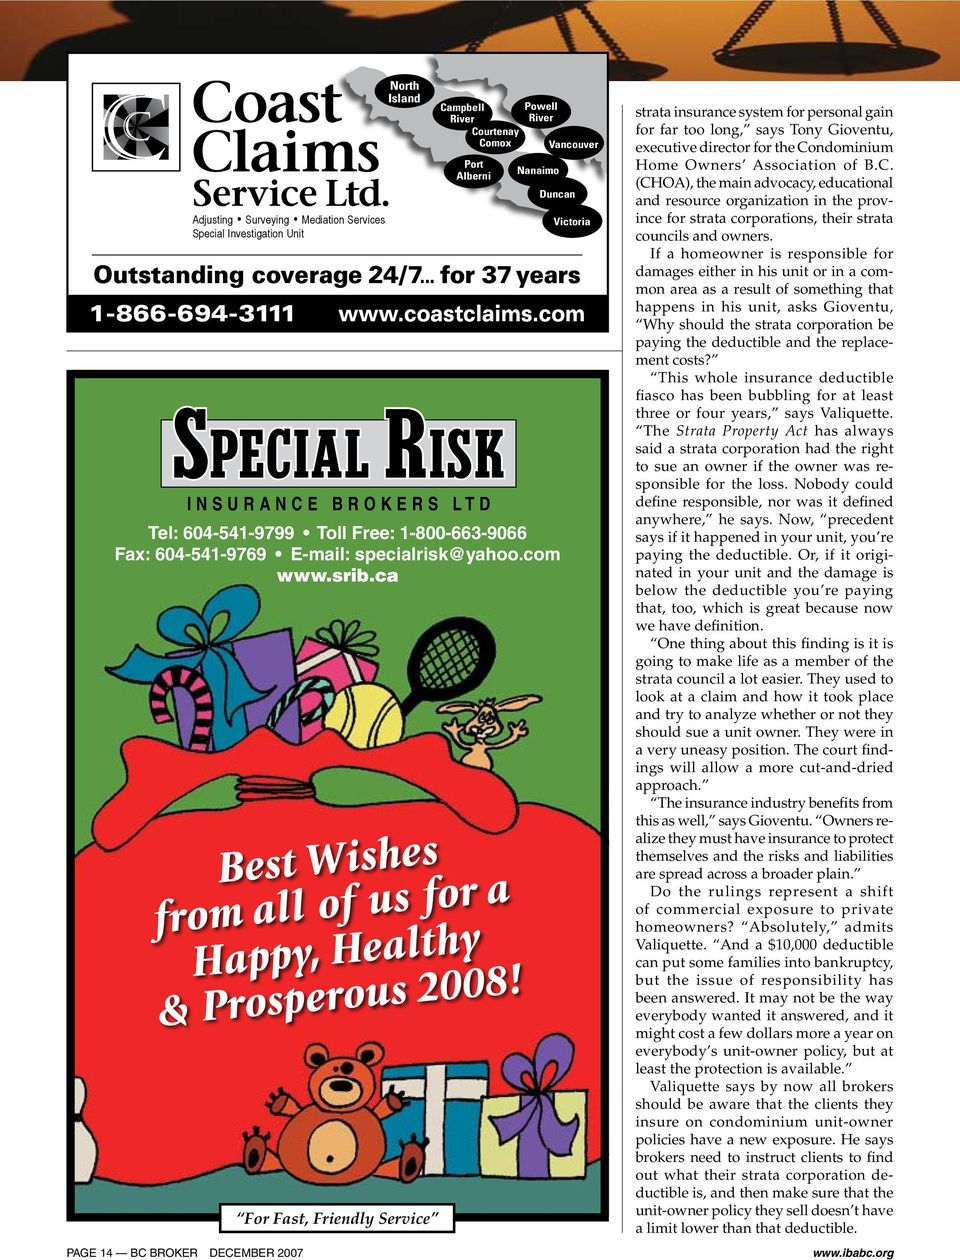 PAGE 14 BC BROKER DECEMber 2007 North Island For Fast, Friendly Service Campbell River Courtenay Comox Port Alberni Powell River Nanaimo Vancouver Duncan Victoria Outstanding coverage 24/7.